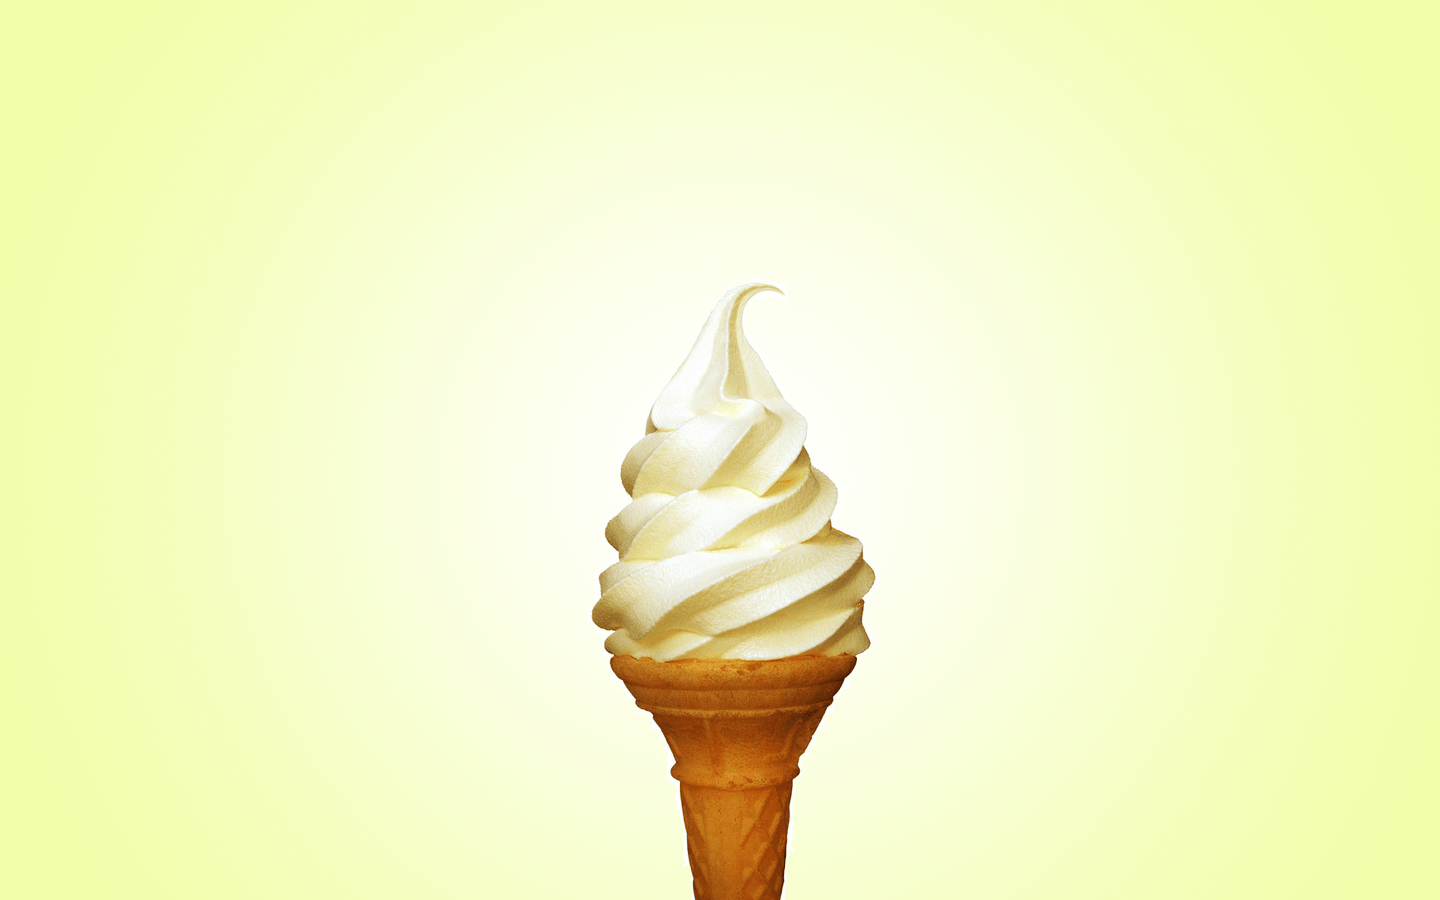 Vanilla And Cocolate Ice Cream Wallpaper 9160